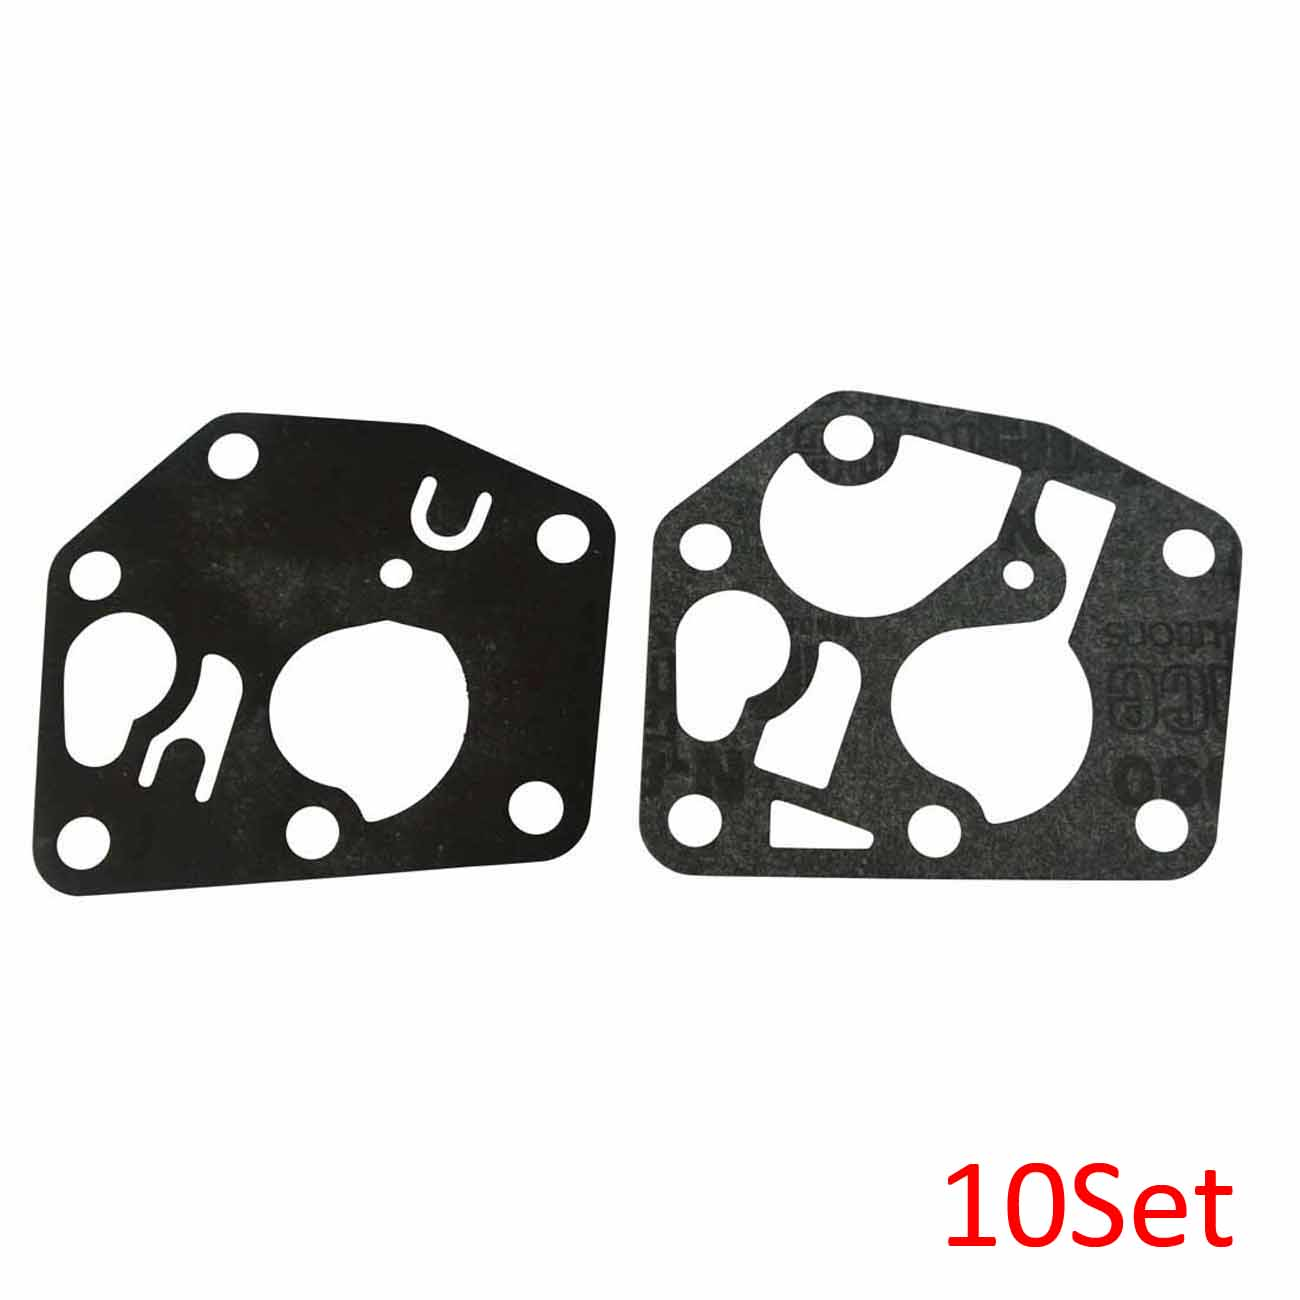 Carburettor Carb Gasket Kit For <font><b>Briggs</b></font> Stratton Carburettor Diaphragm <font><b>795083</b></font> 10Set image